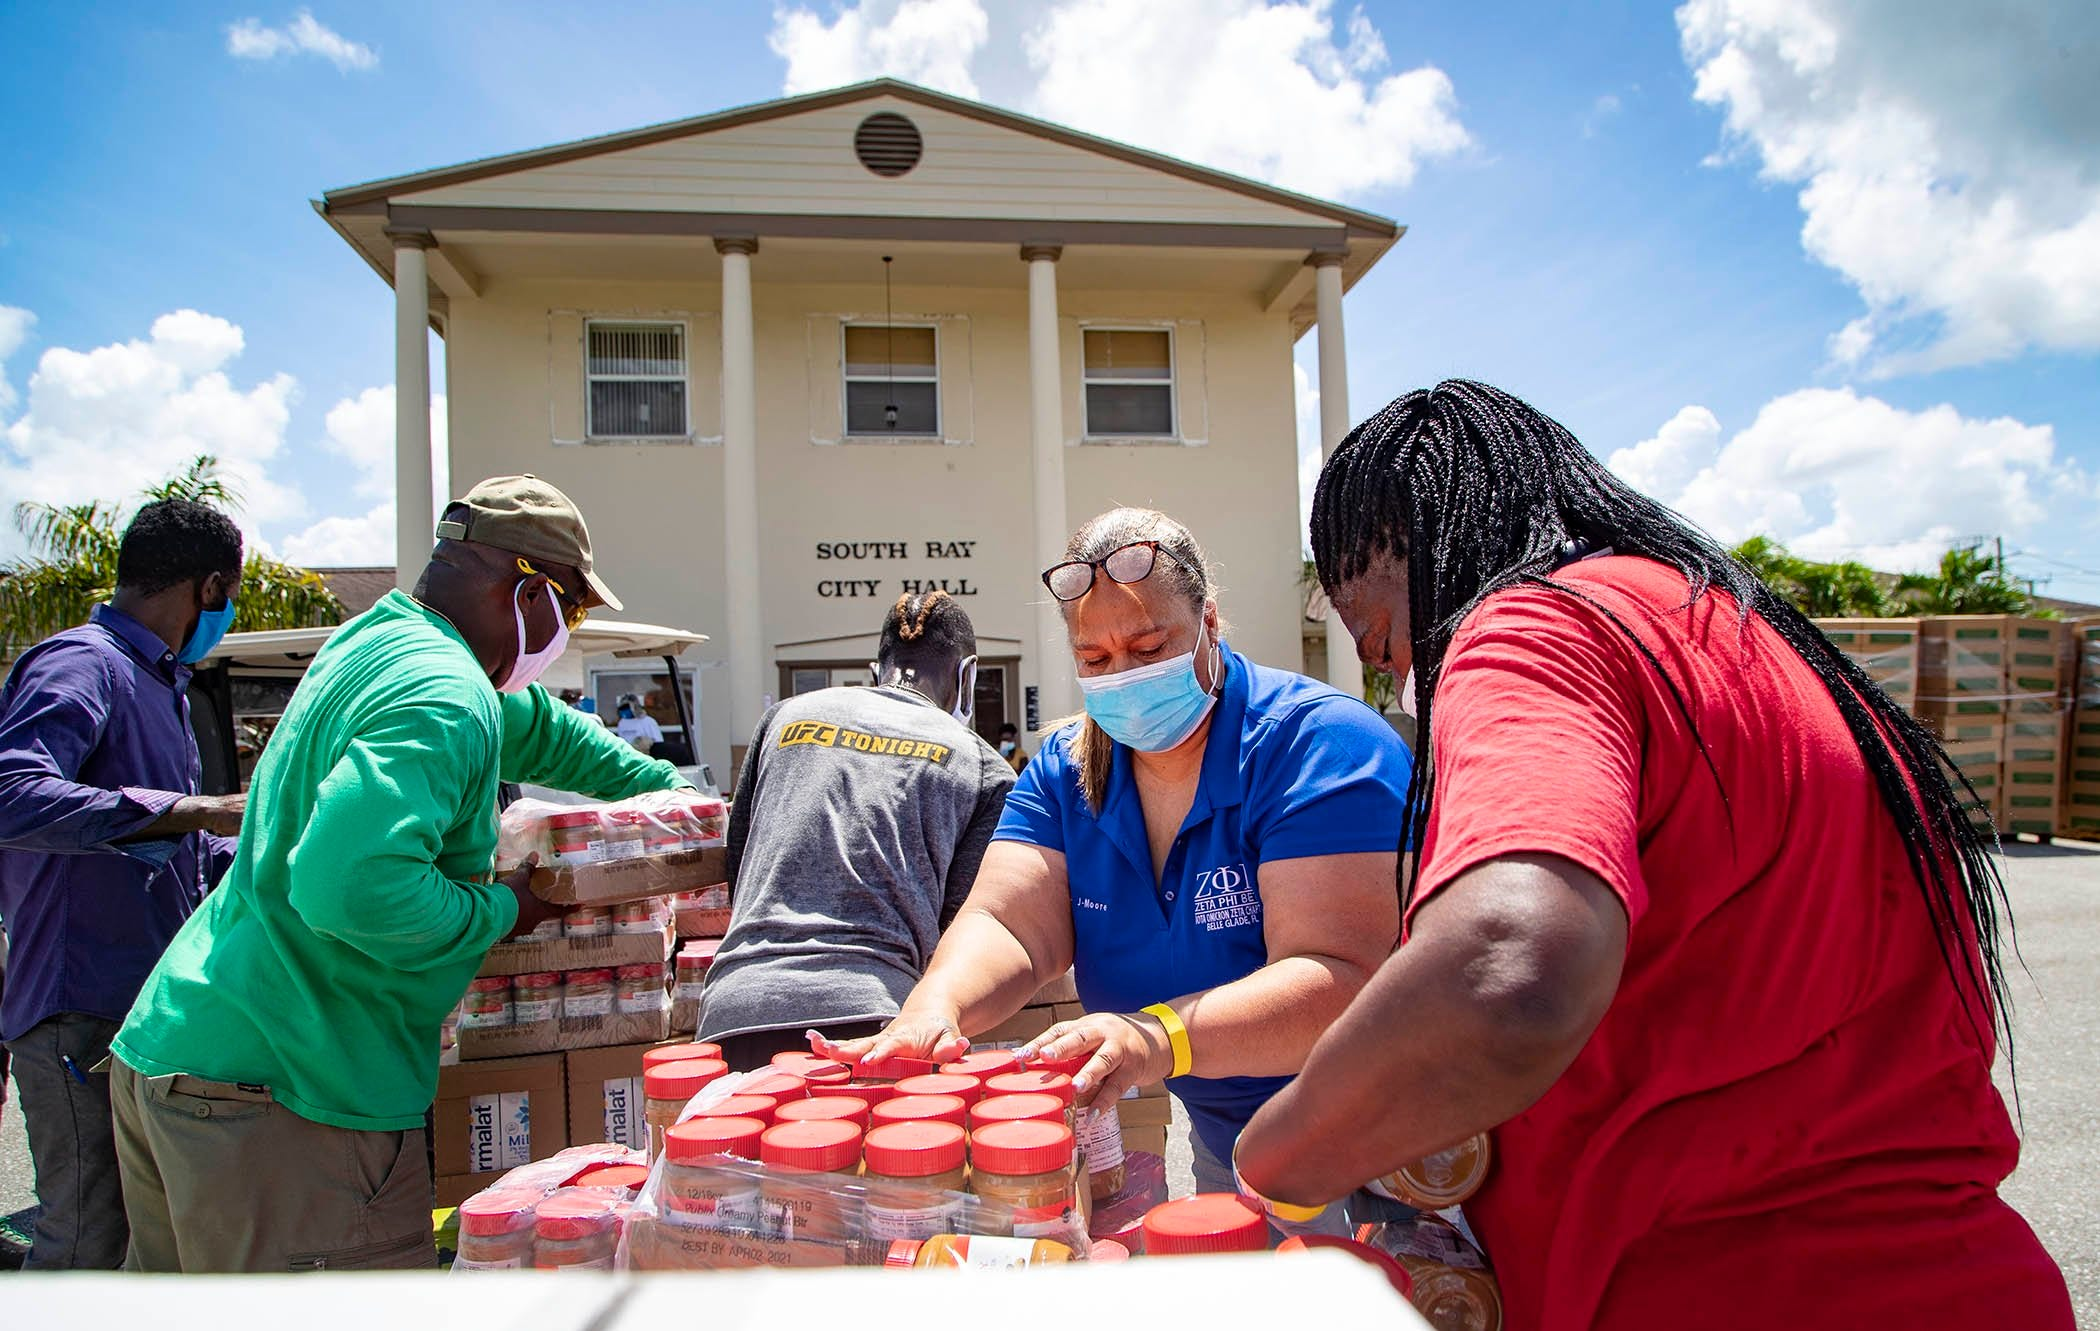 Tammy Jackson Moore (second from right) helped start, the non-profit, Guardians of the Glades. Every Friday she coordinates in one of the tri-city area centers a food distribution and coronavirus testing site. She helped distribute 100,000 pounds of food in South Bay, July 24, 2020.